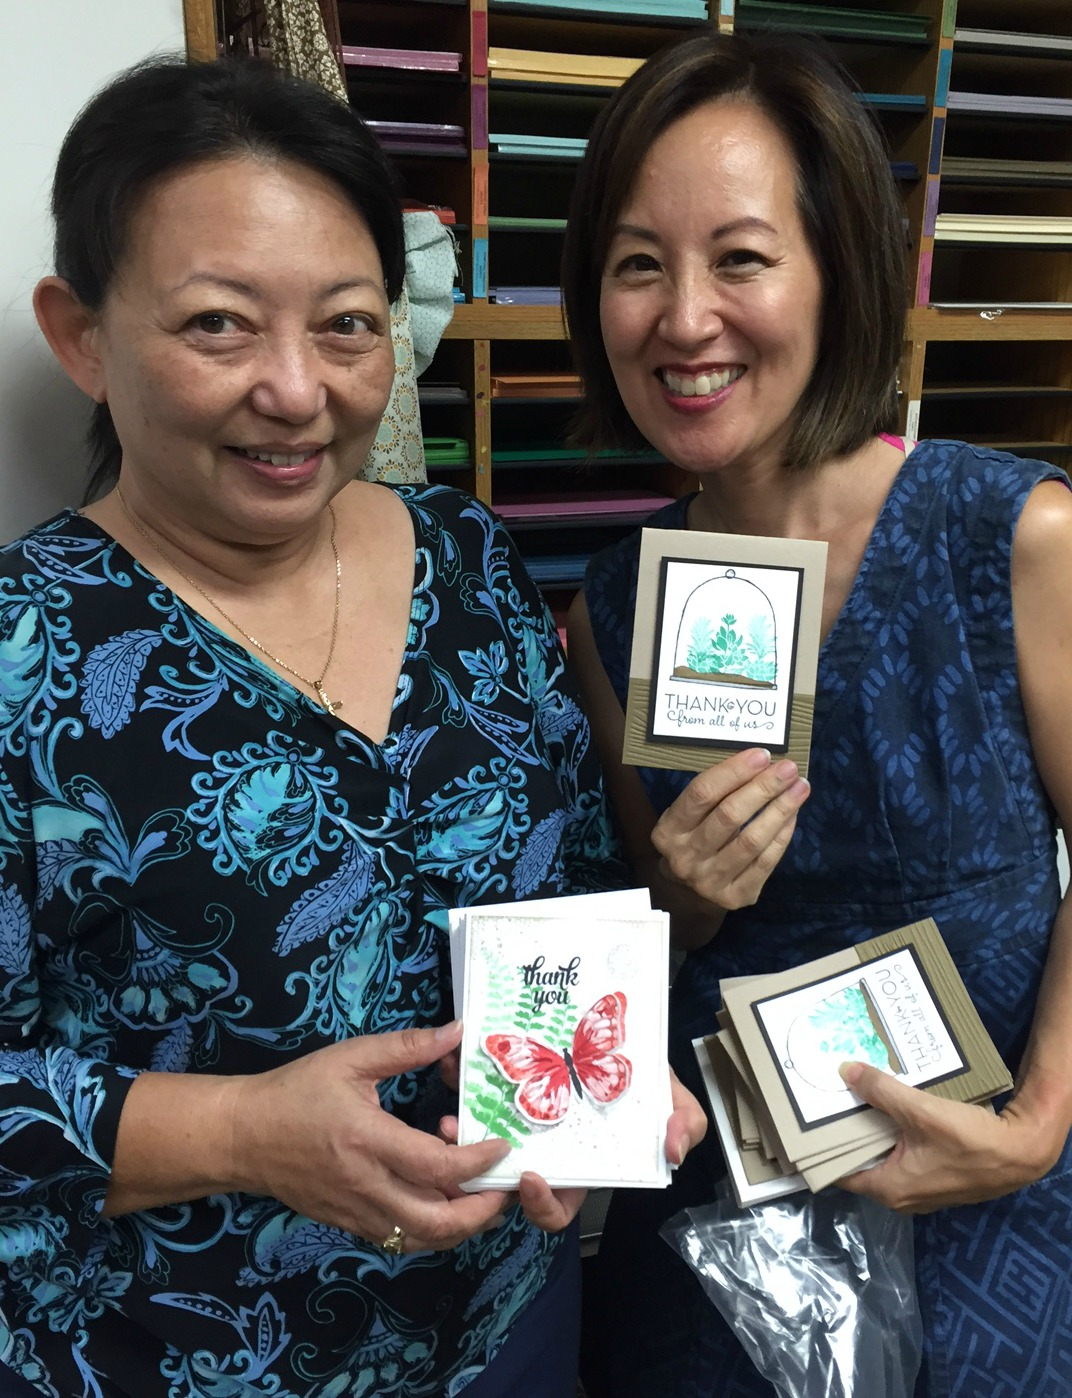 Cyndie and Pam and their beautiful card creations!